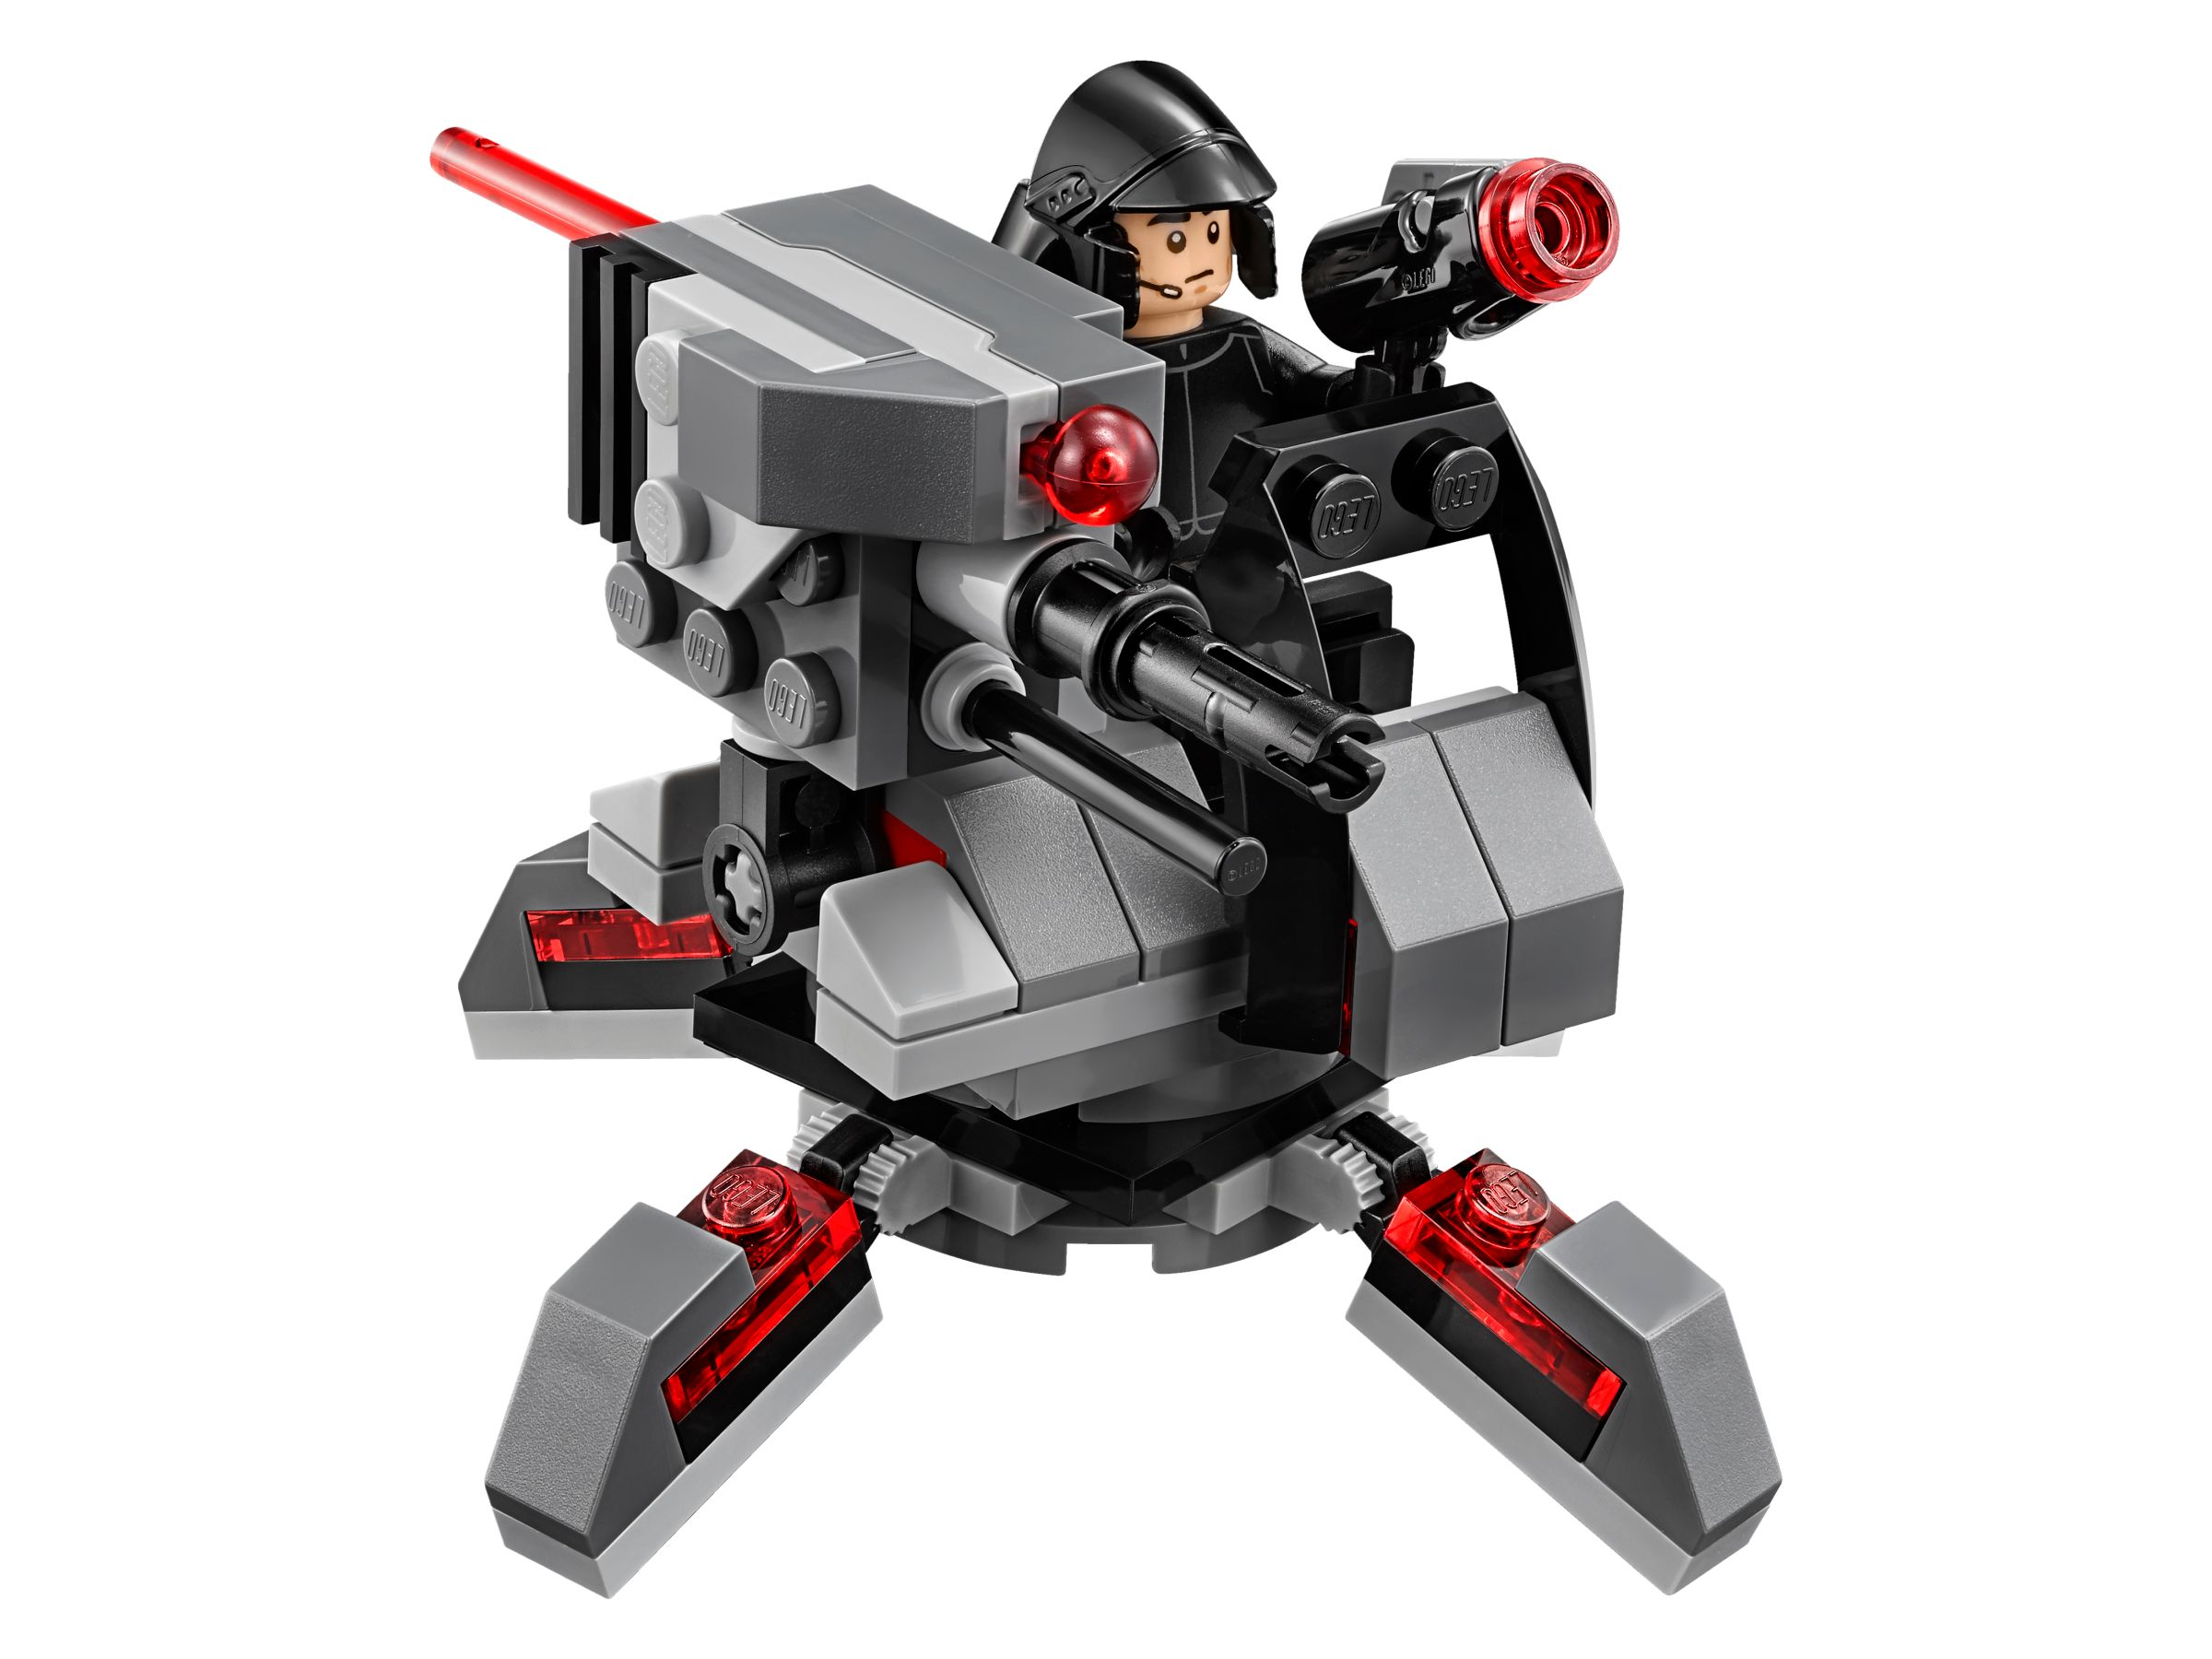 LEGO Star Wars 75197 First Order Specialists Battle Pack LEGO_75197_alt4.jpg